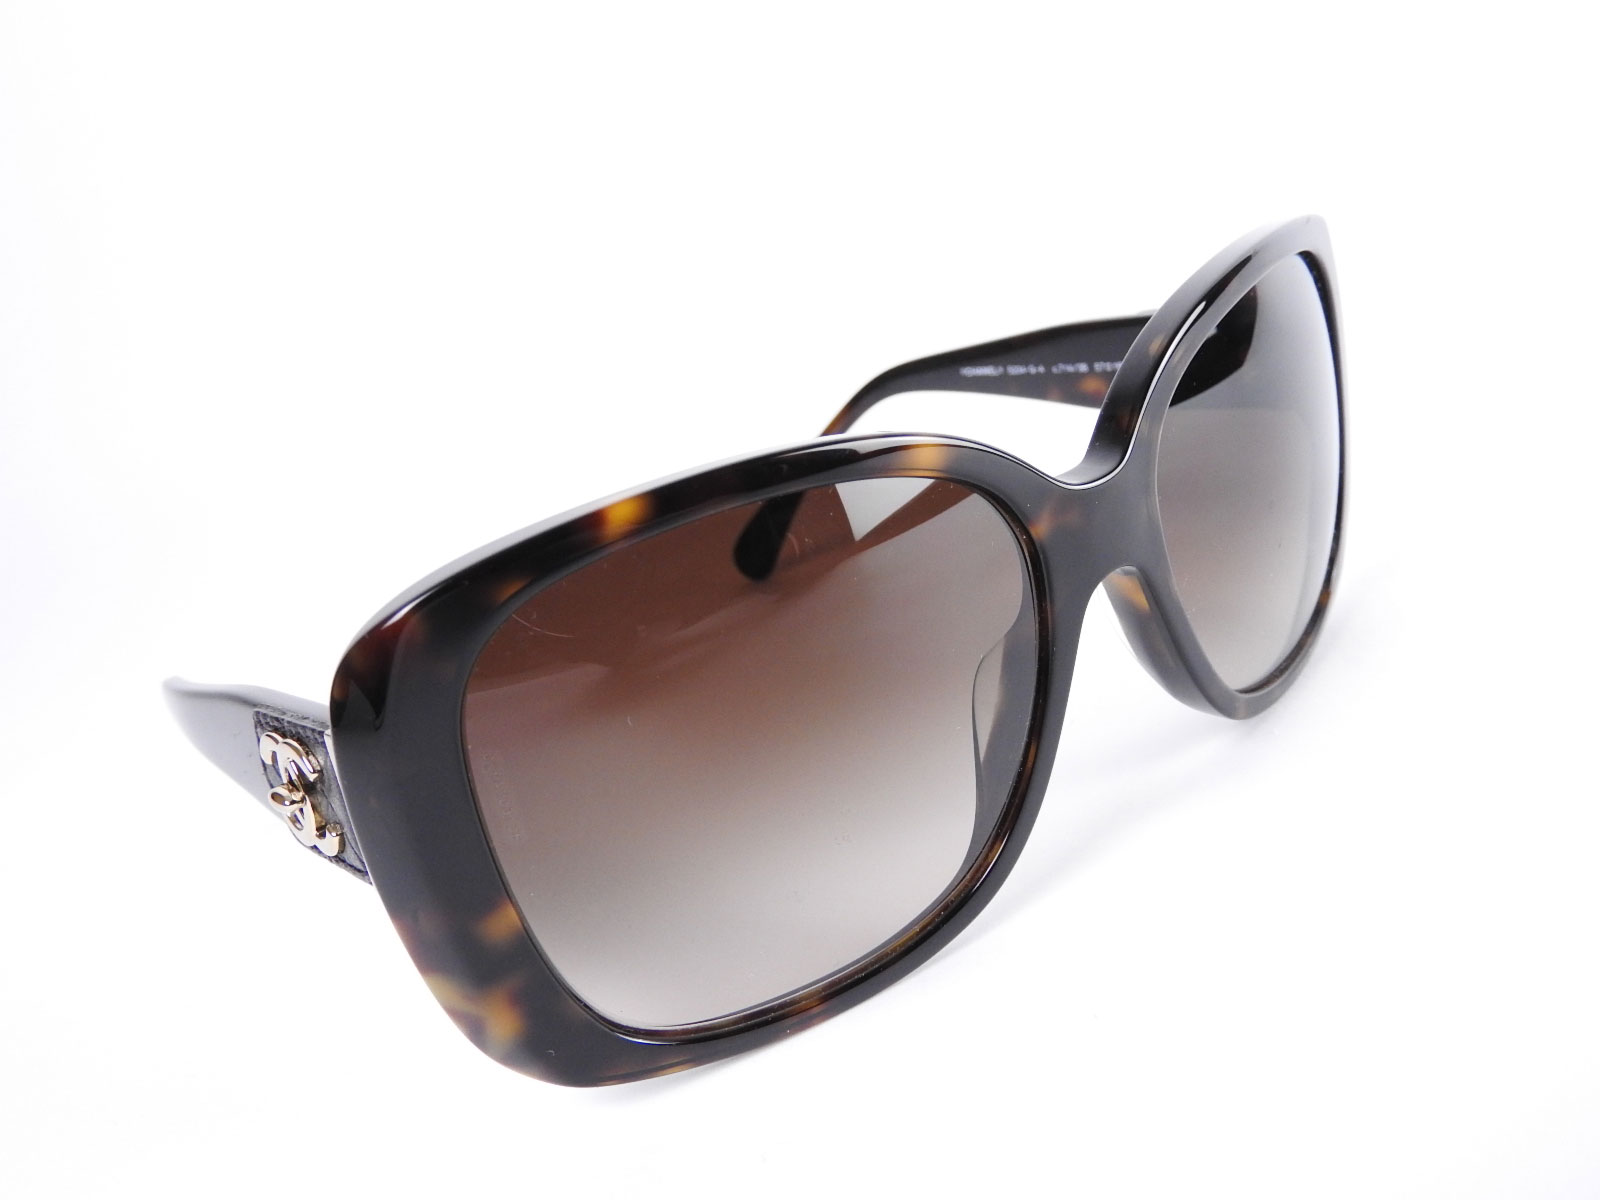 Chanel Glasses Frame Malaysia : CHANEL CC Logo Motif Plastic Sun Glasses Brown Lens Frame ...